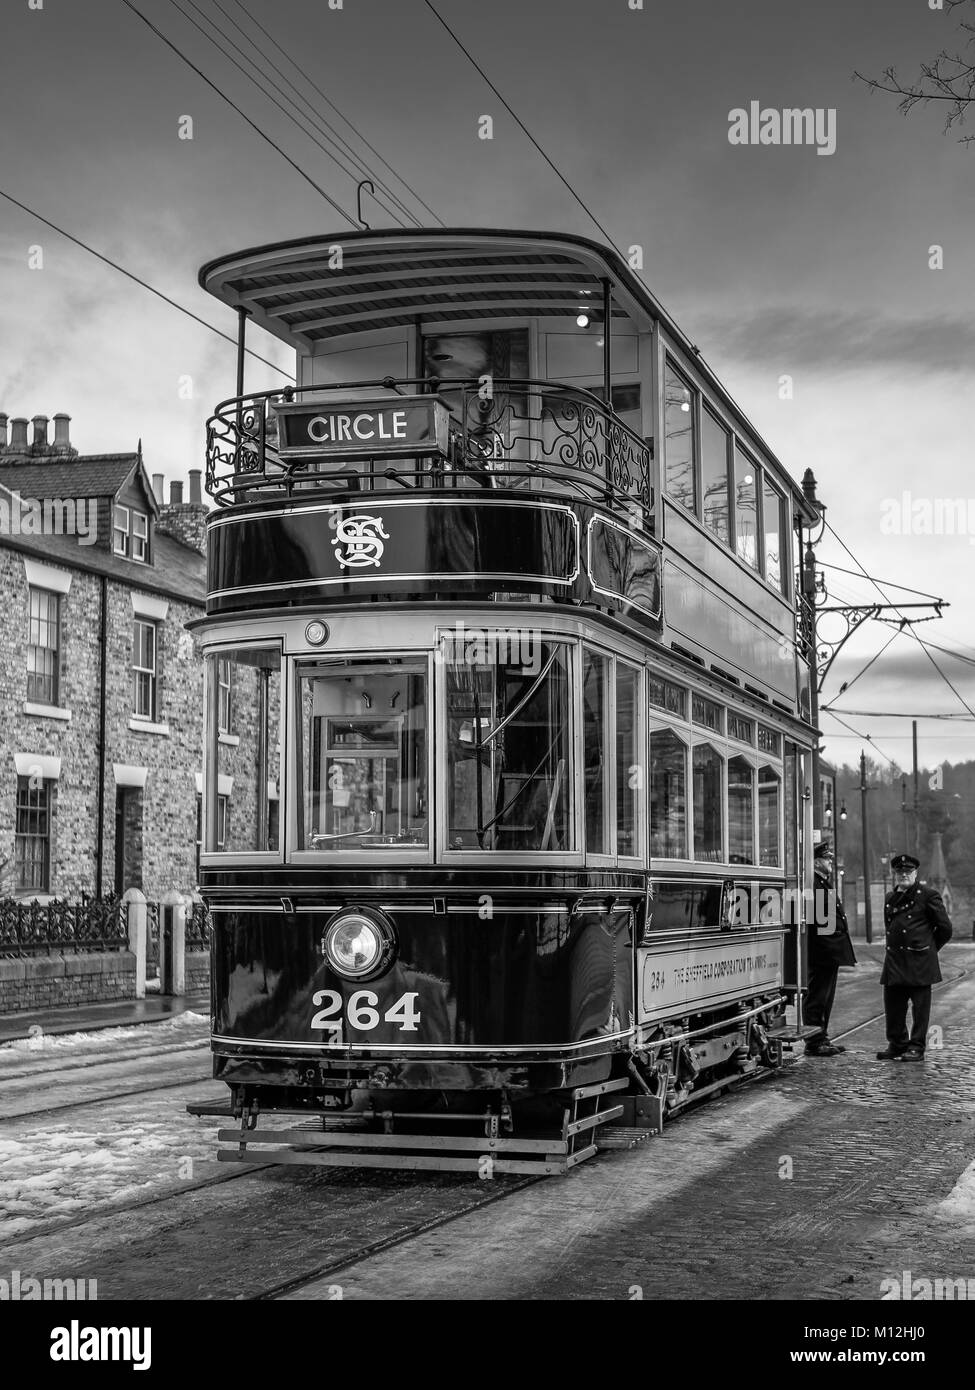 STANLEY, COUNTY DURHAM/UK - JANUARY 20 : Old Tram at the North of England Open Air Museum in Stanley, County Durham - Stock Image